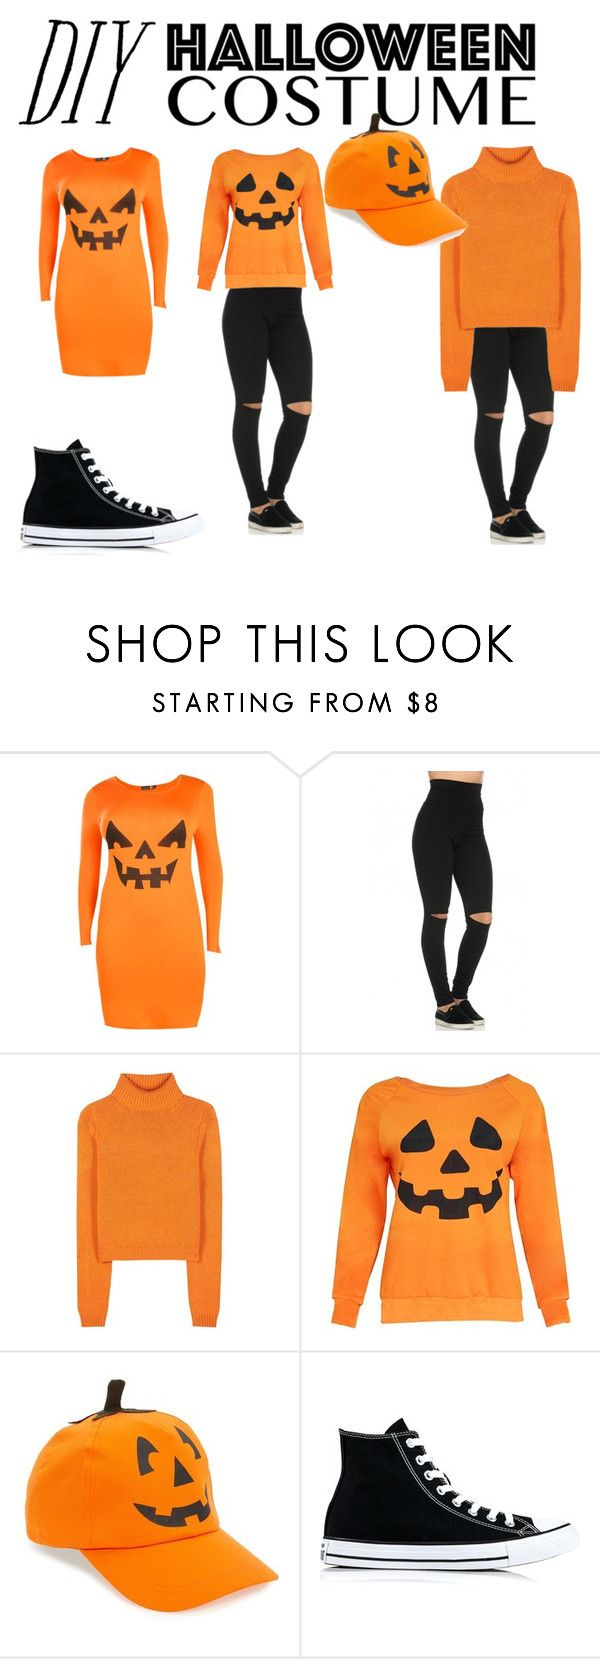 """DIY Pumpkin costume"" by heyoitsadriene ❤ liked on Polyvore featuring Boohoo, Acne Studios, David & Young, Converse, halloweencostume and DIYHalloween"